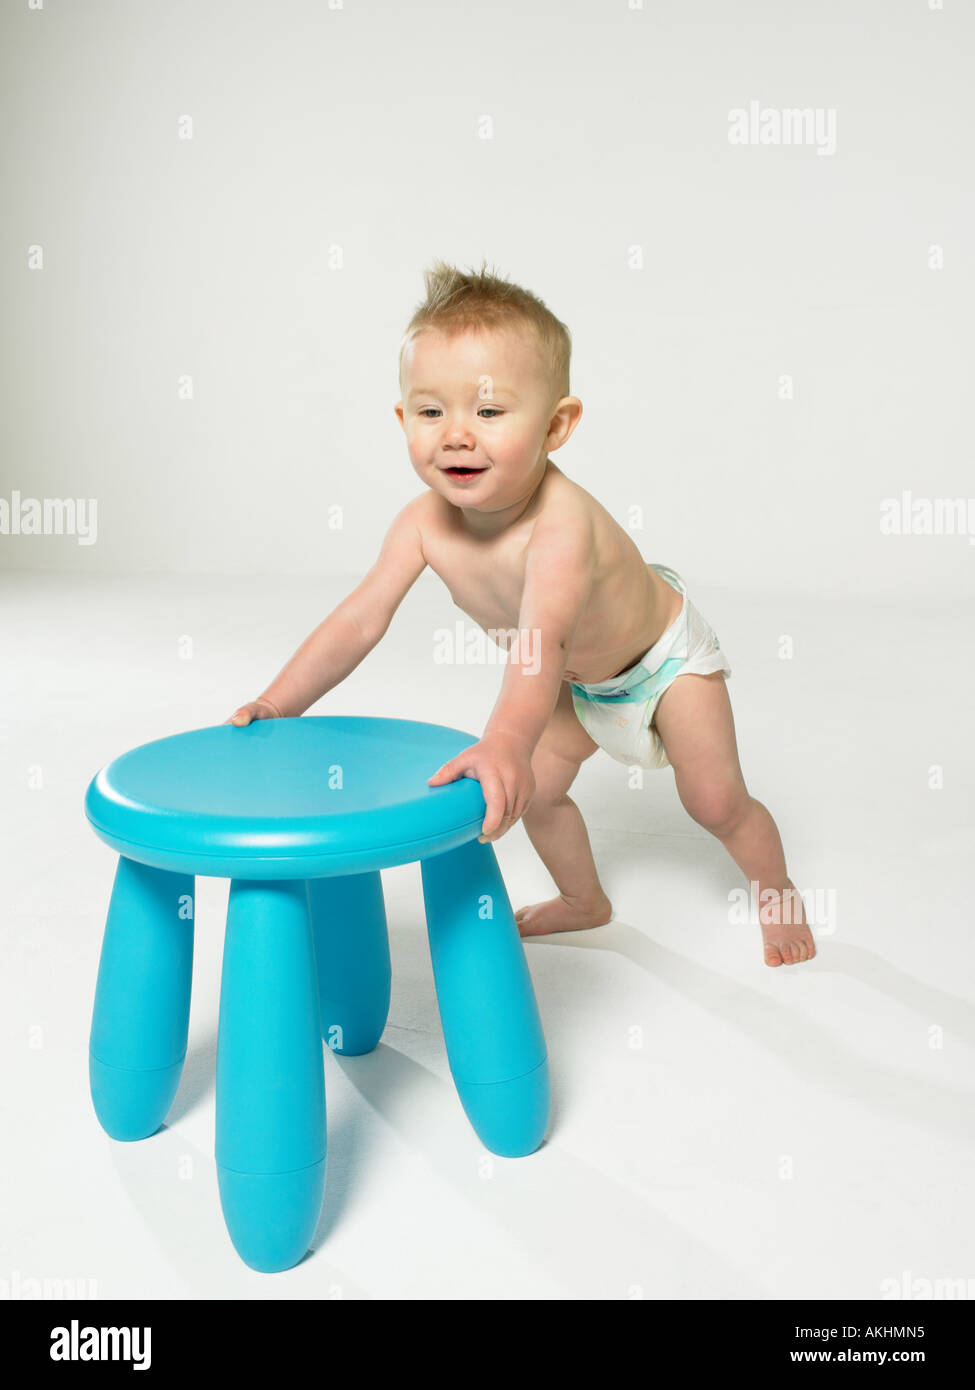 Baby with blue stool - Stock Image